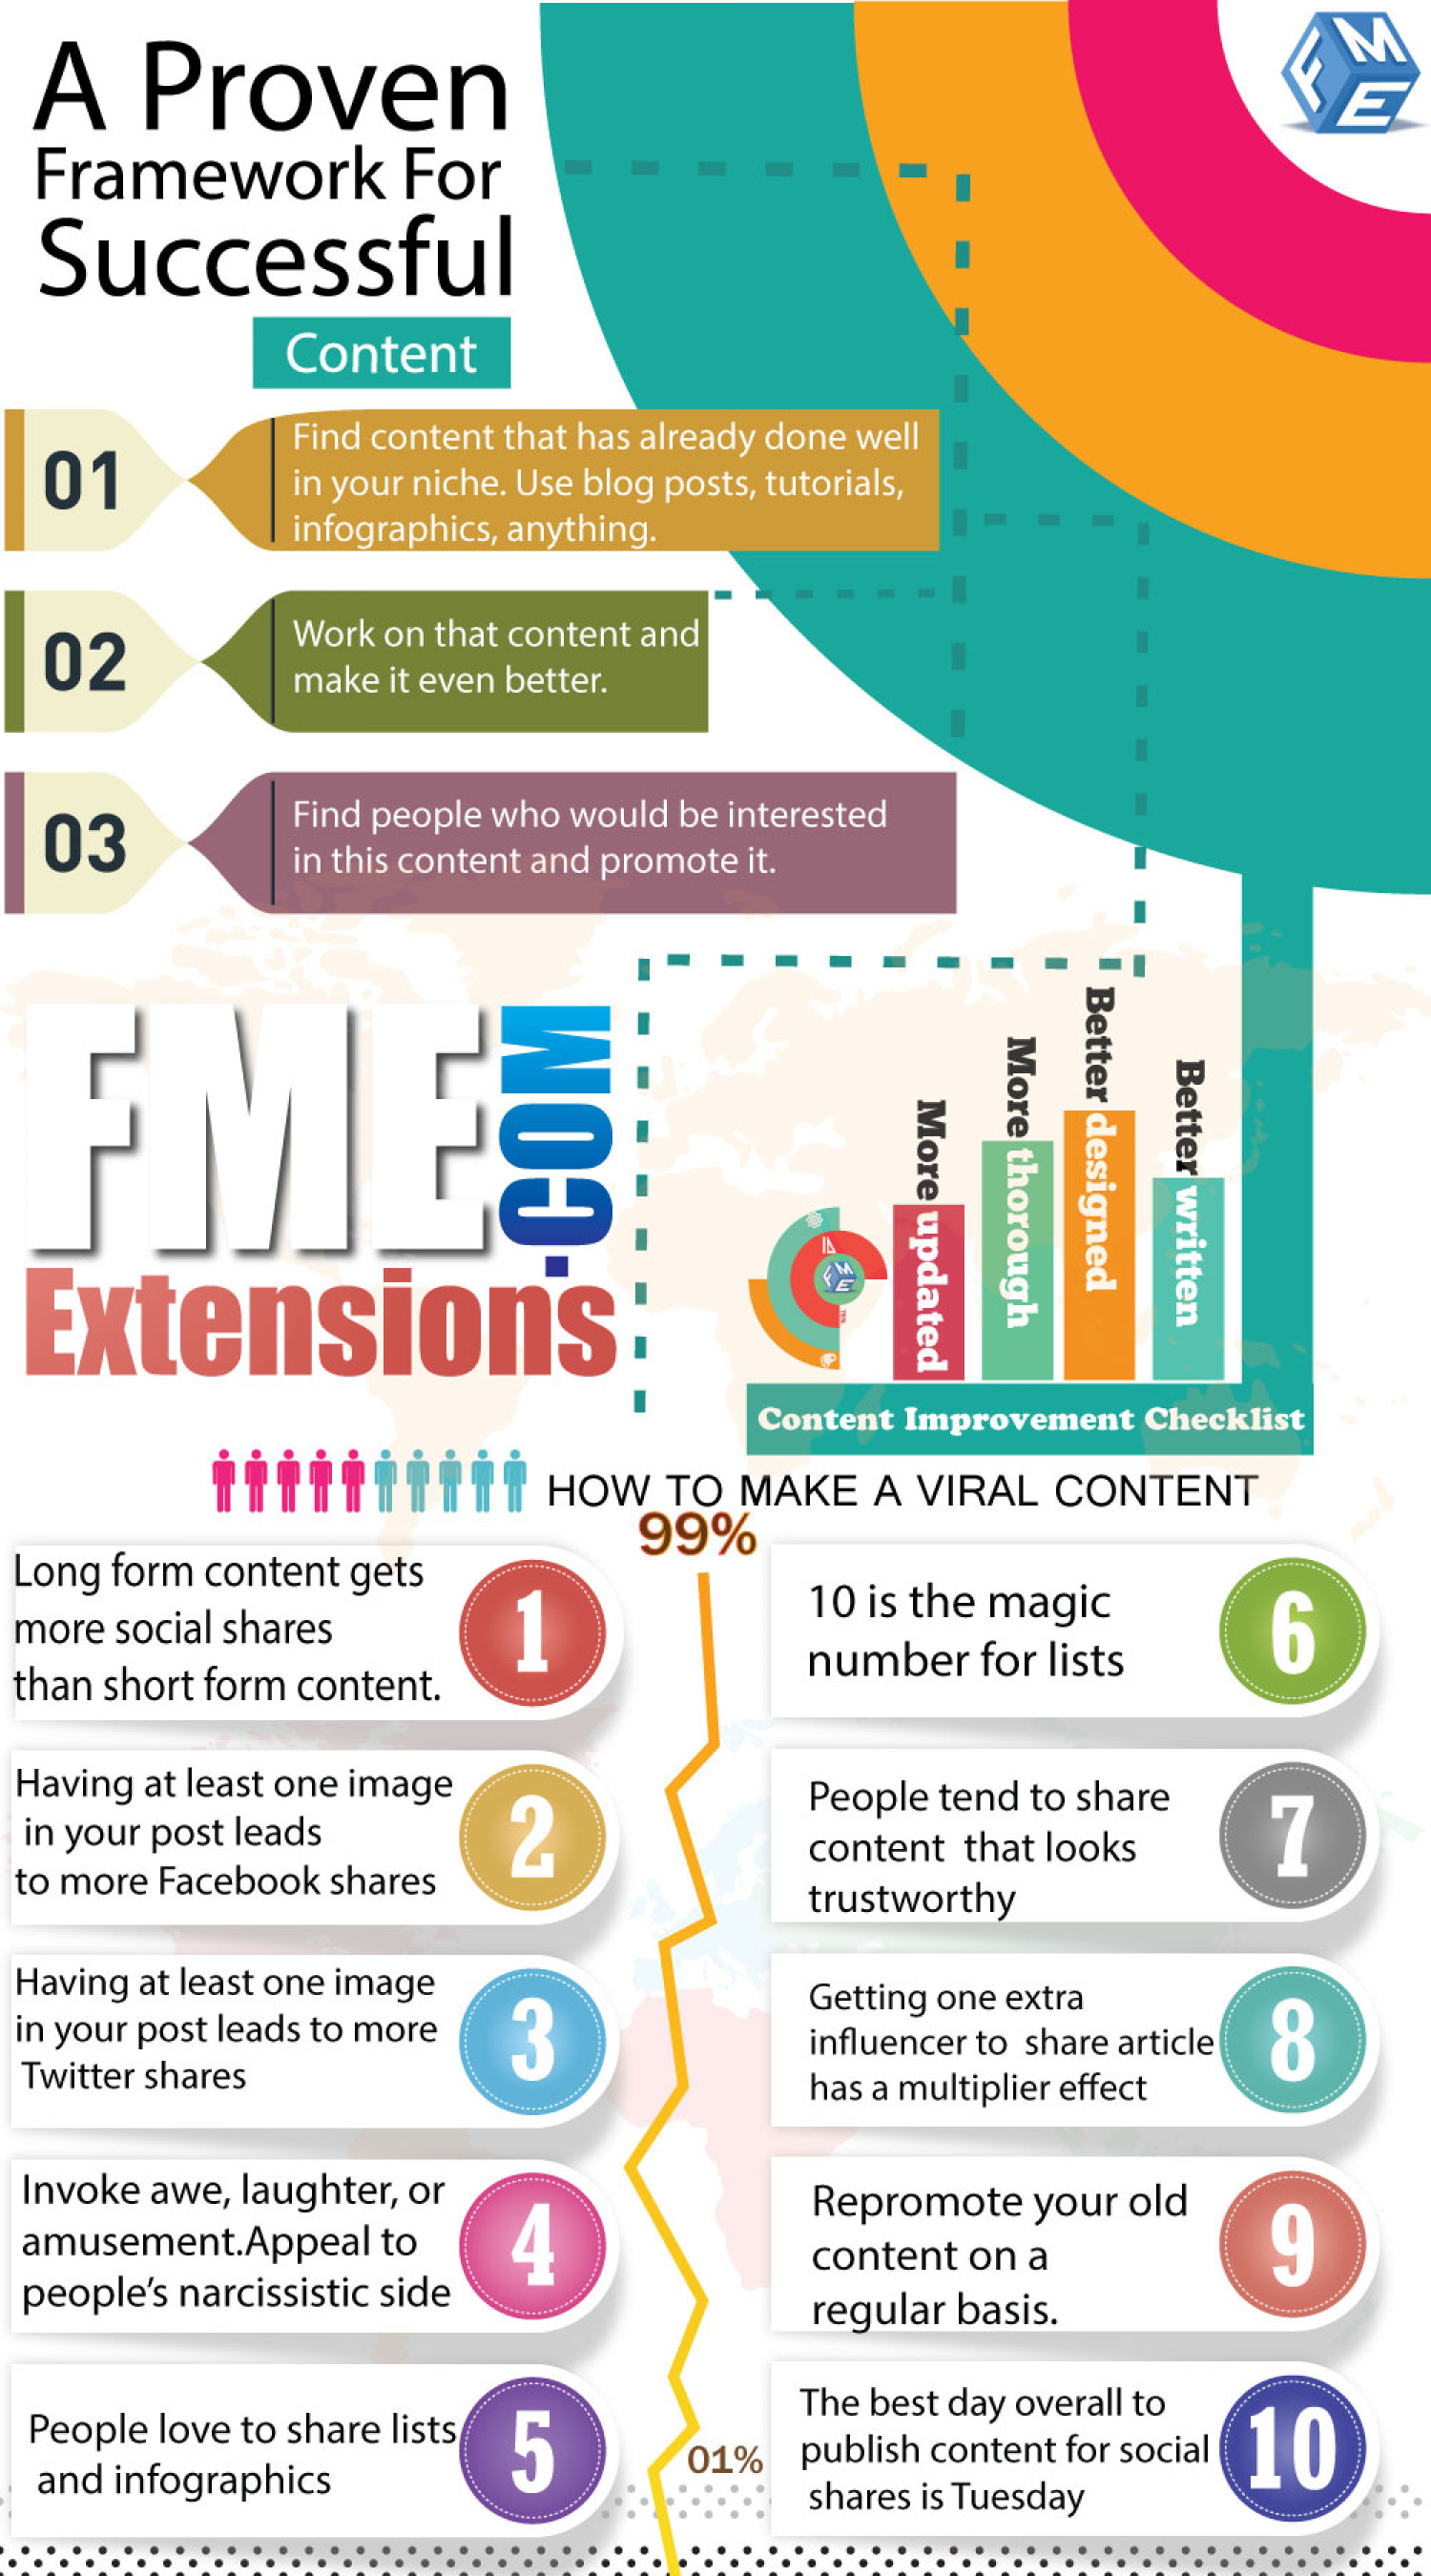 A Proven Framework For Successful Content Infographic